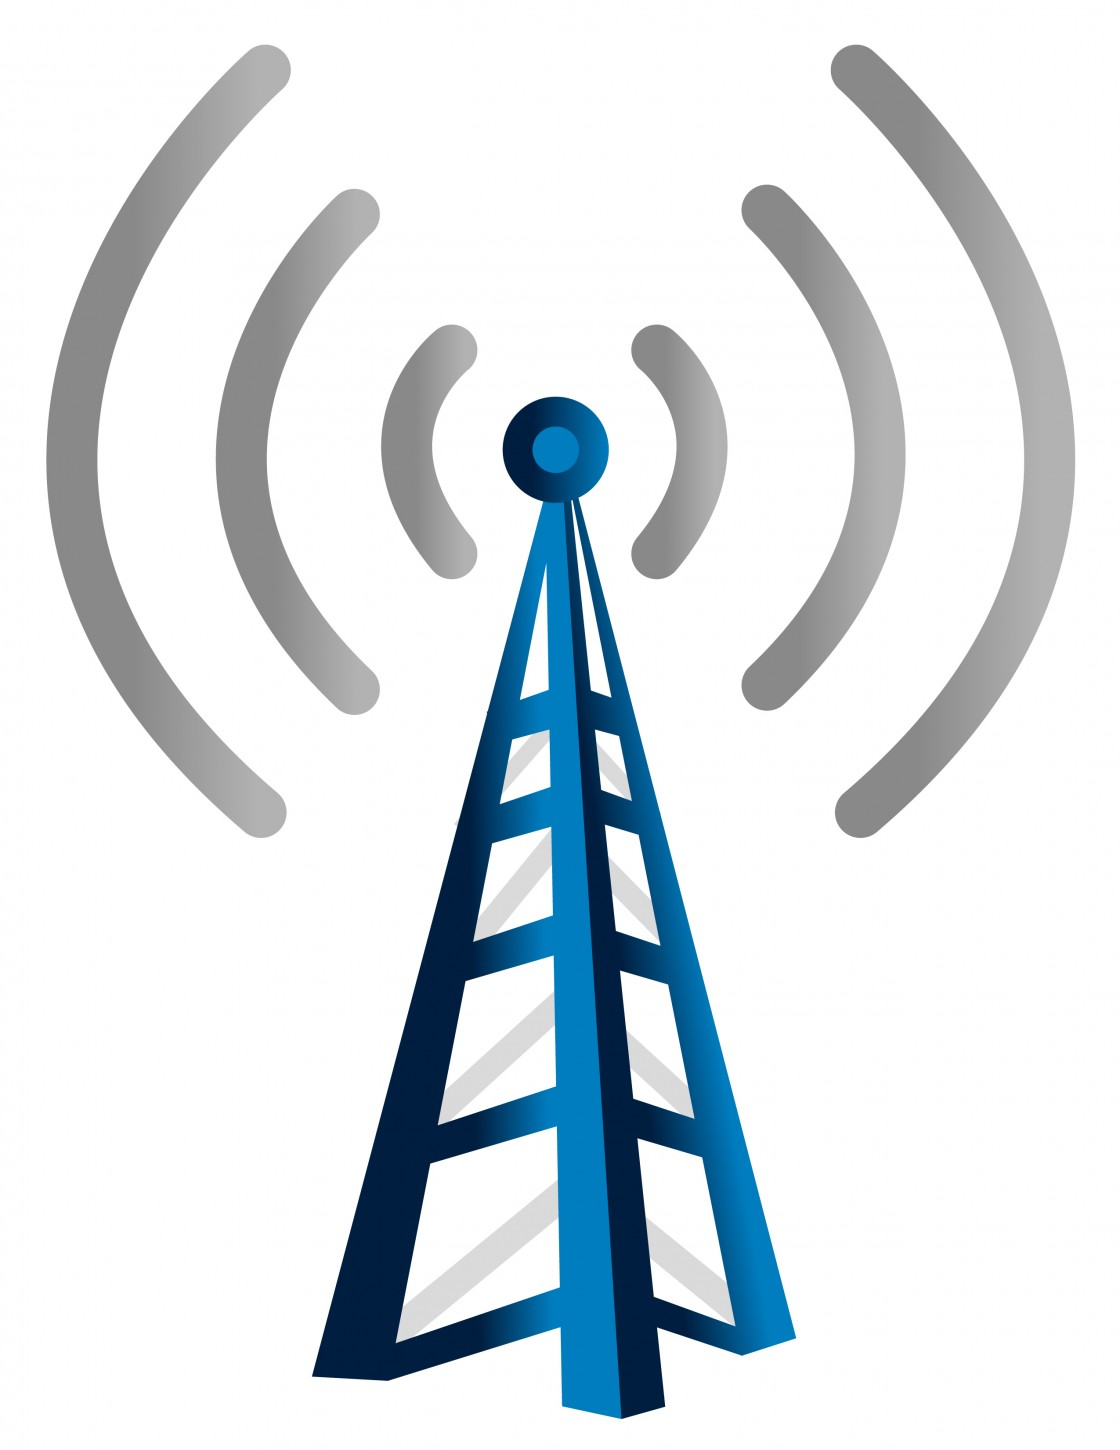 Towers clipart network tower Telecom Clipground clipart Clipart Tower